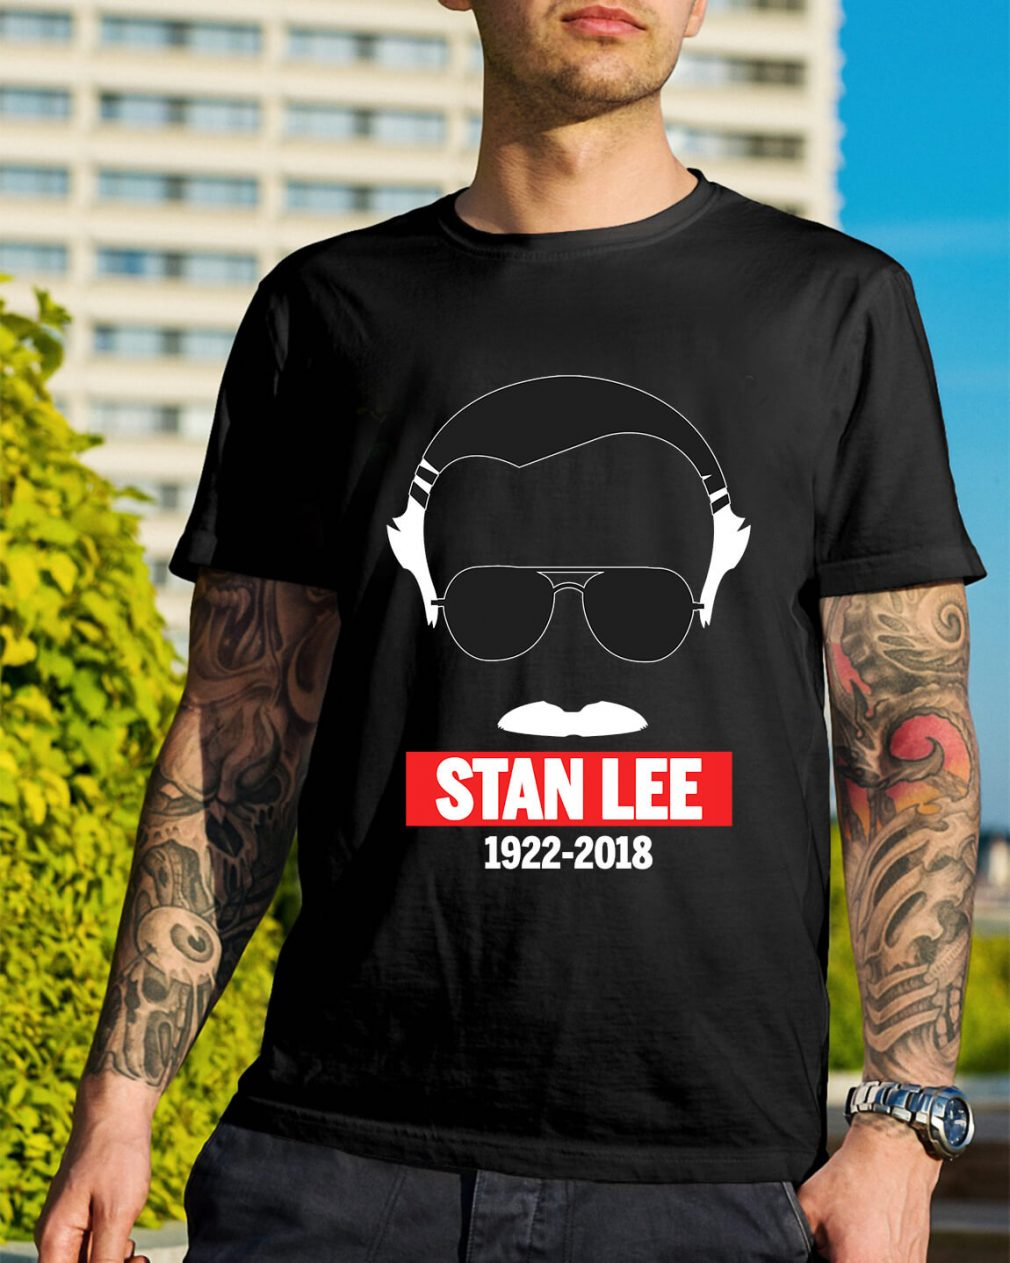 Rip Stan Lee in white 1922-2018 shirt